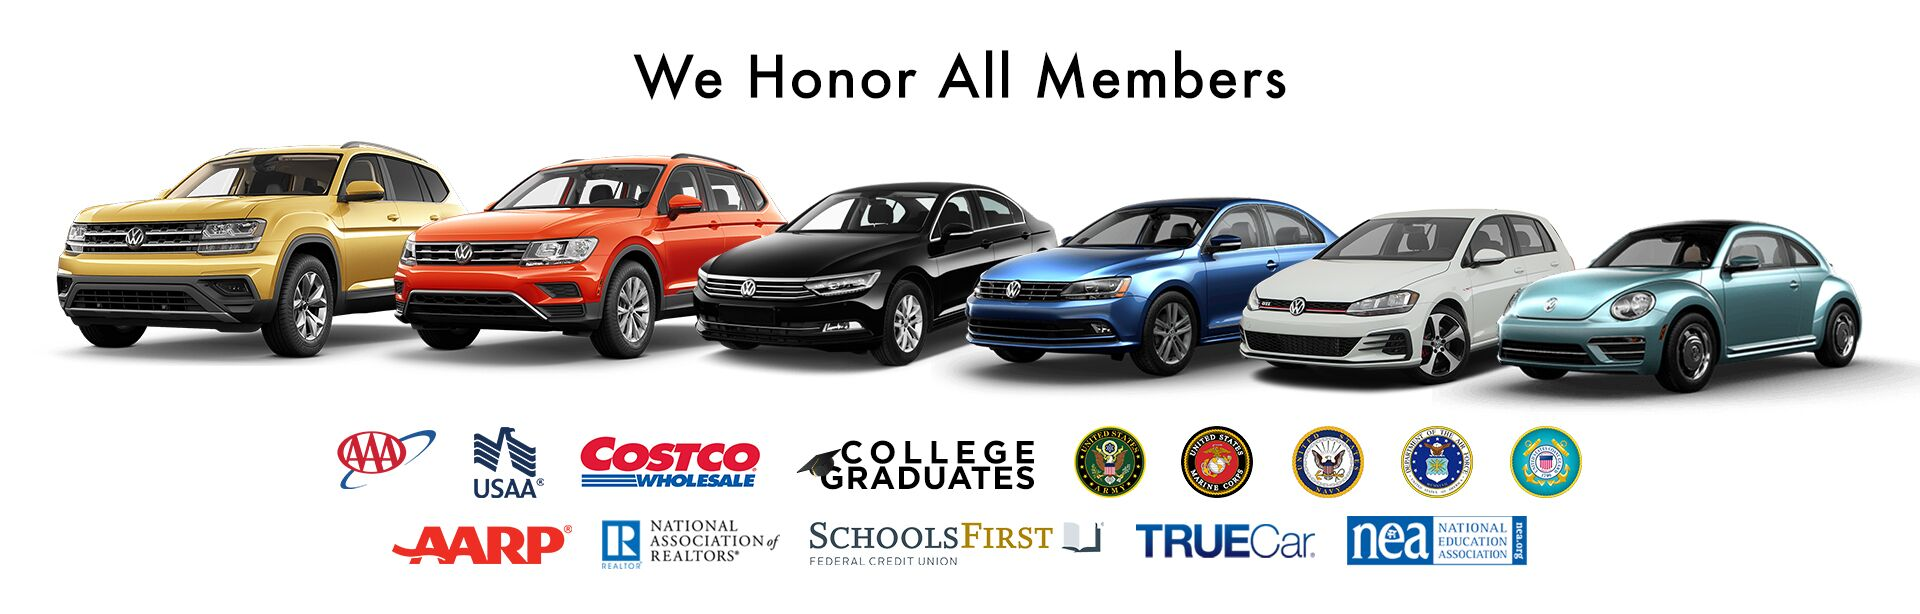 we honor all organizations